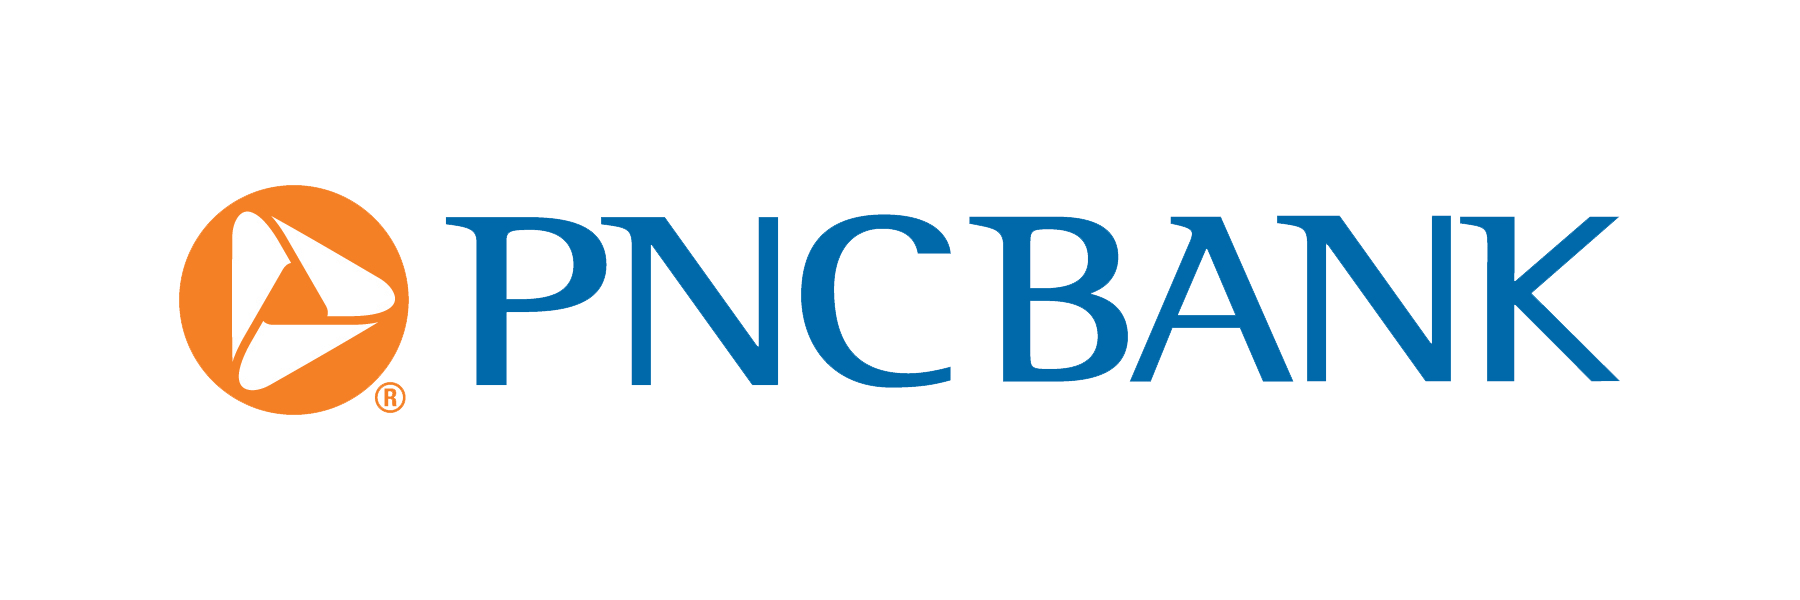 Pnc party png. Bank swcrc